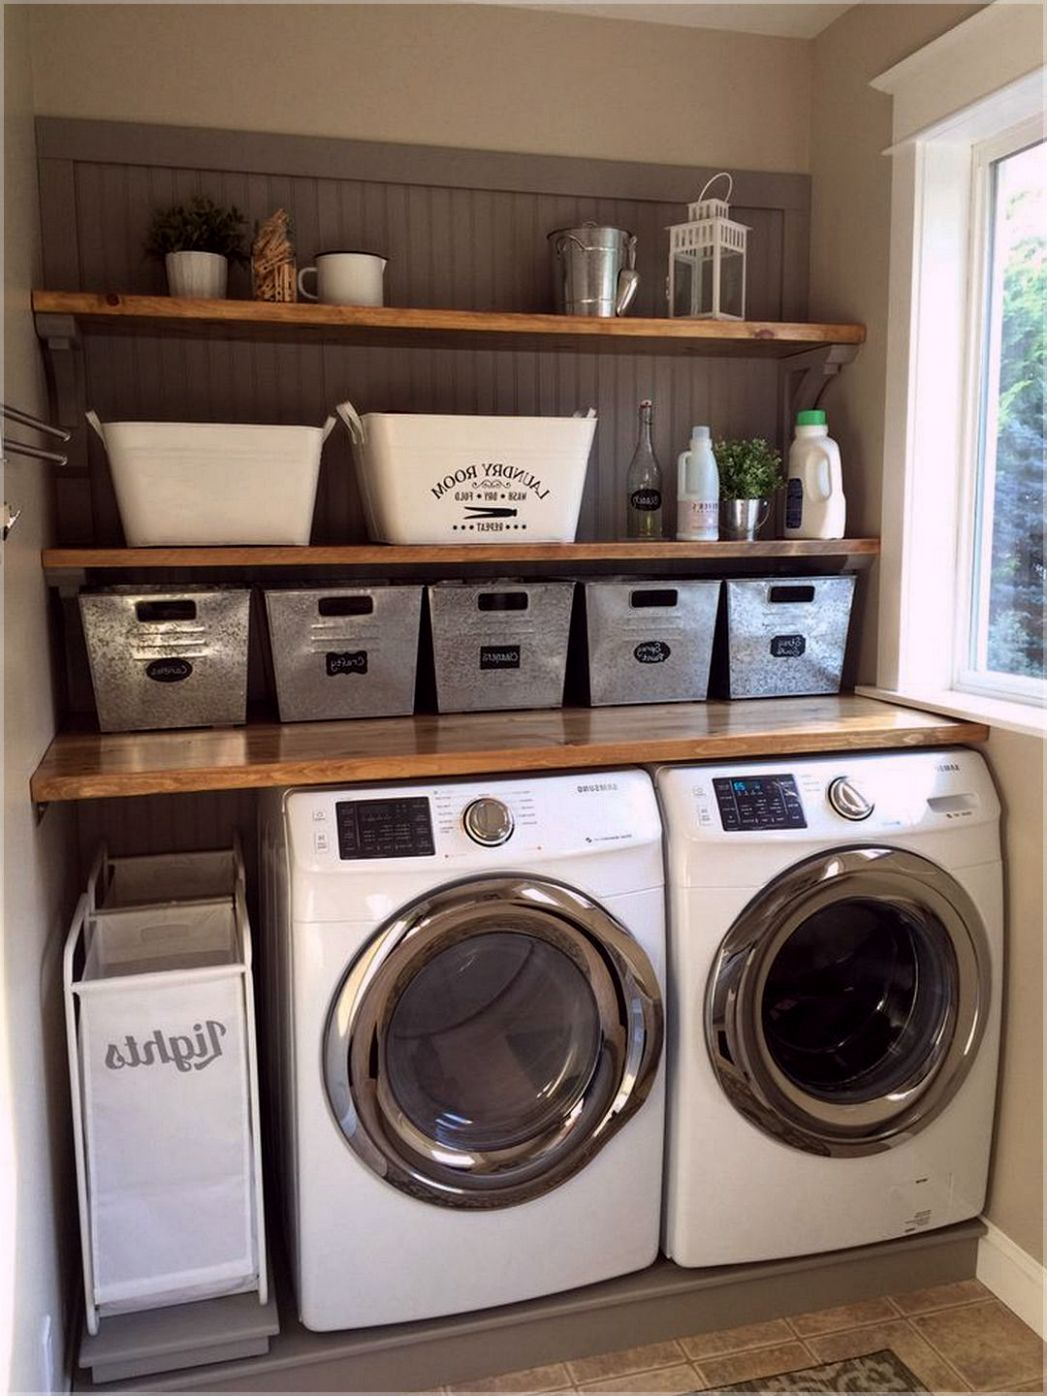 12 Remarkable Laundry Room Layout Ideas for The Perfect Home Drop ..